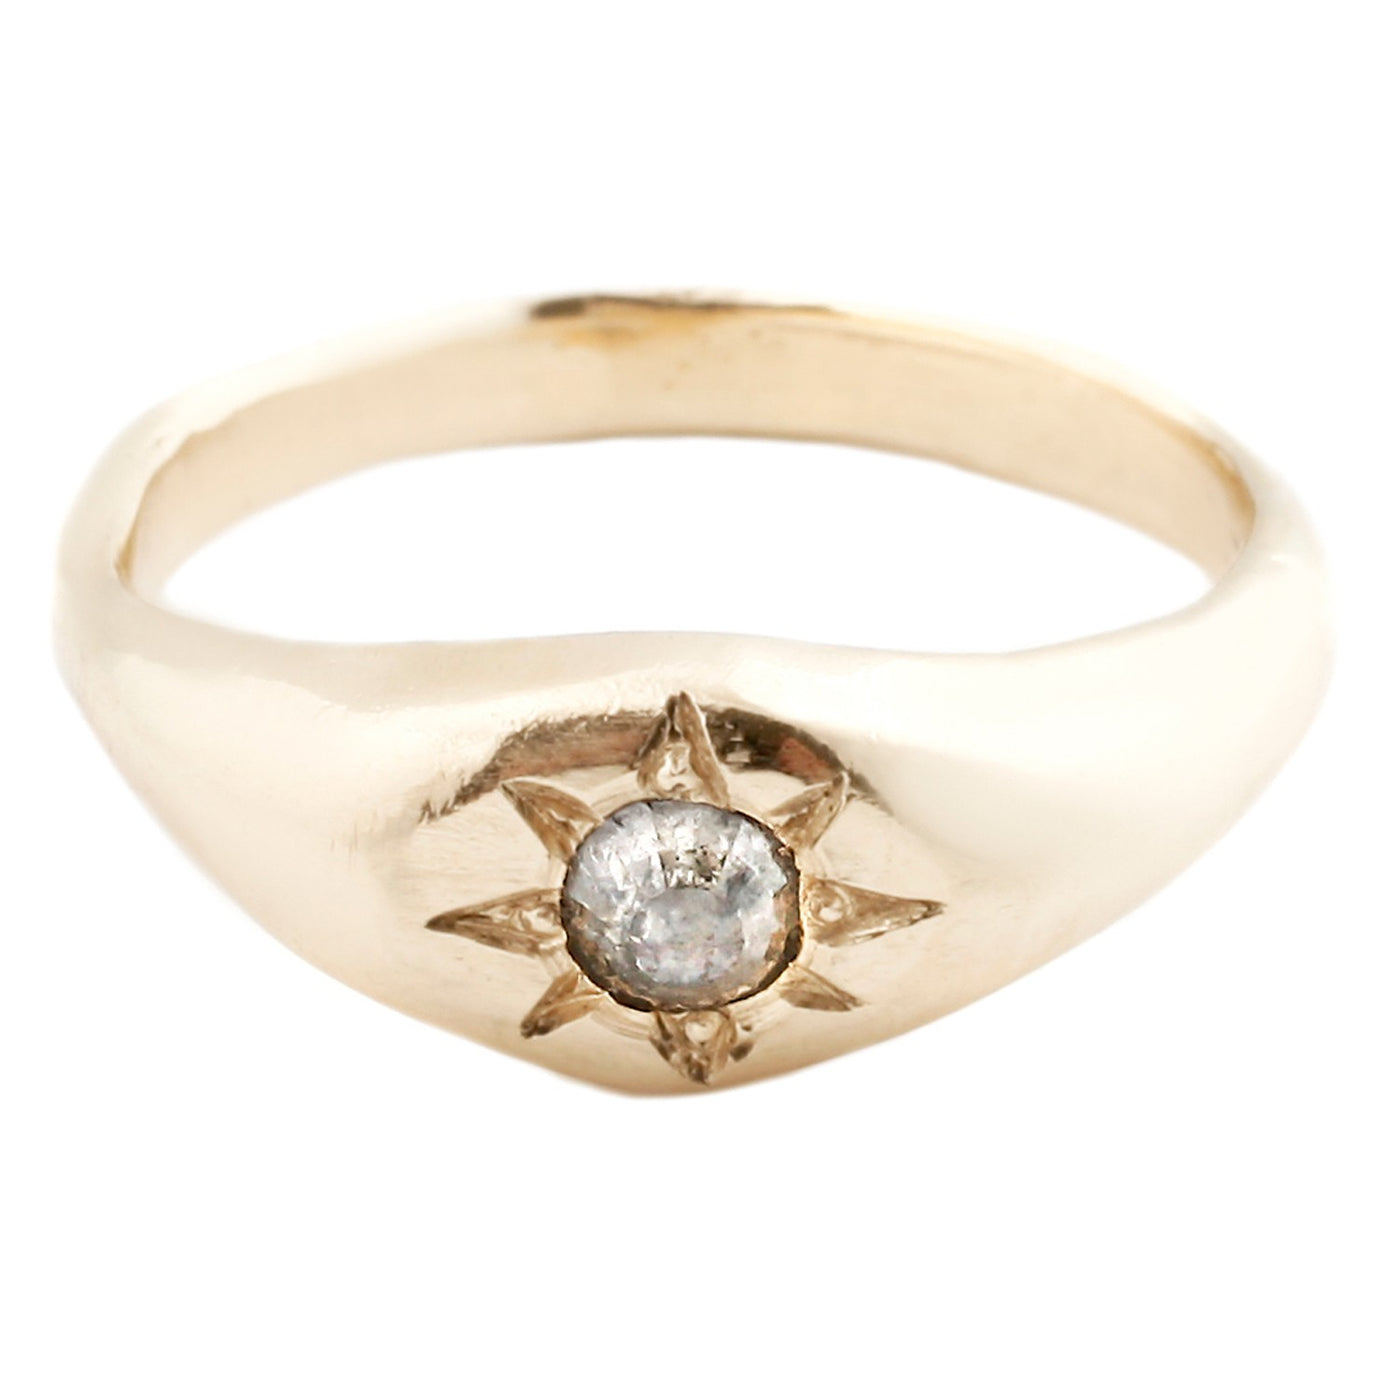 Adeline Gold True North Ring with a diamond